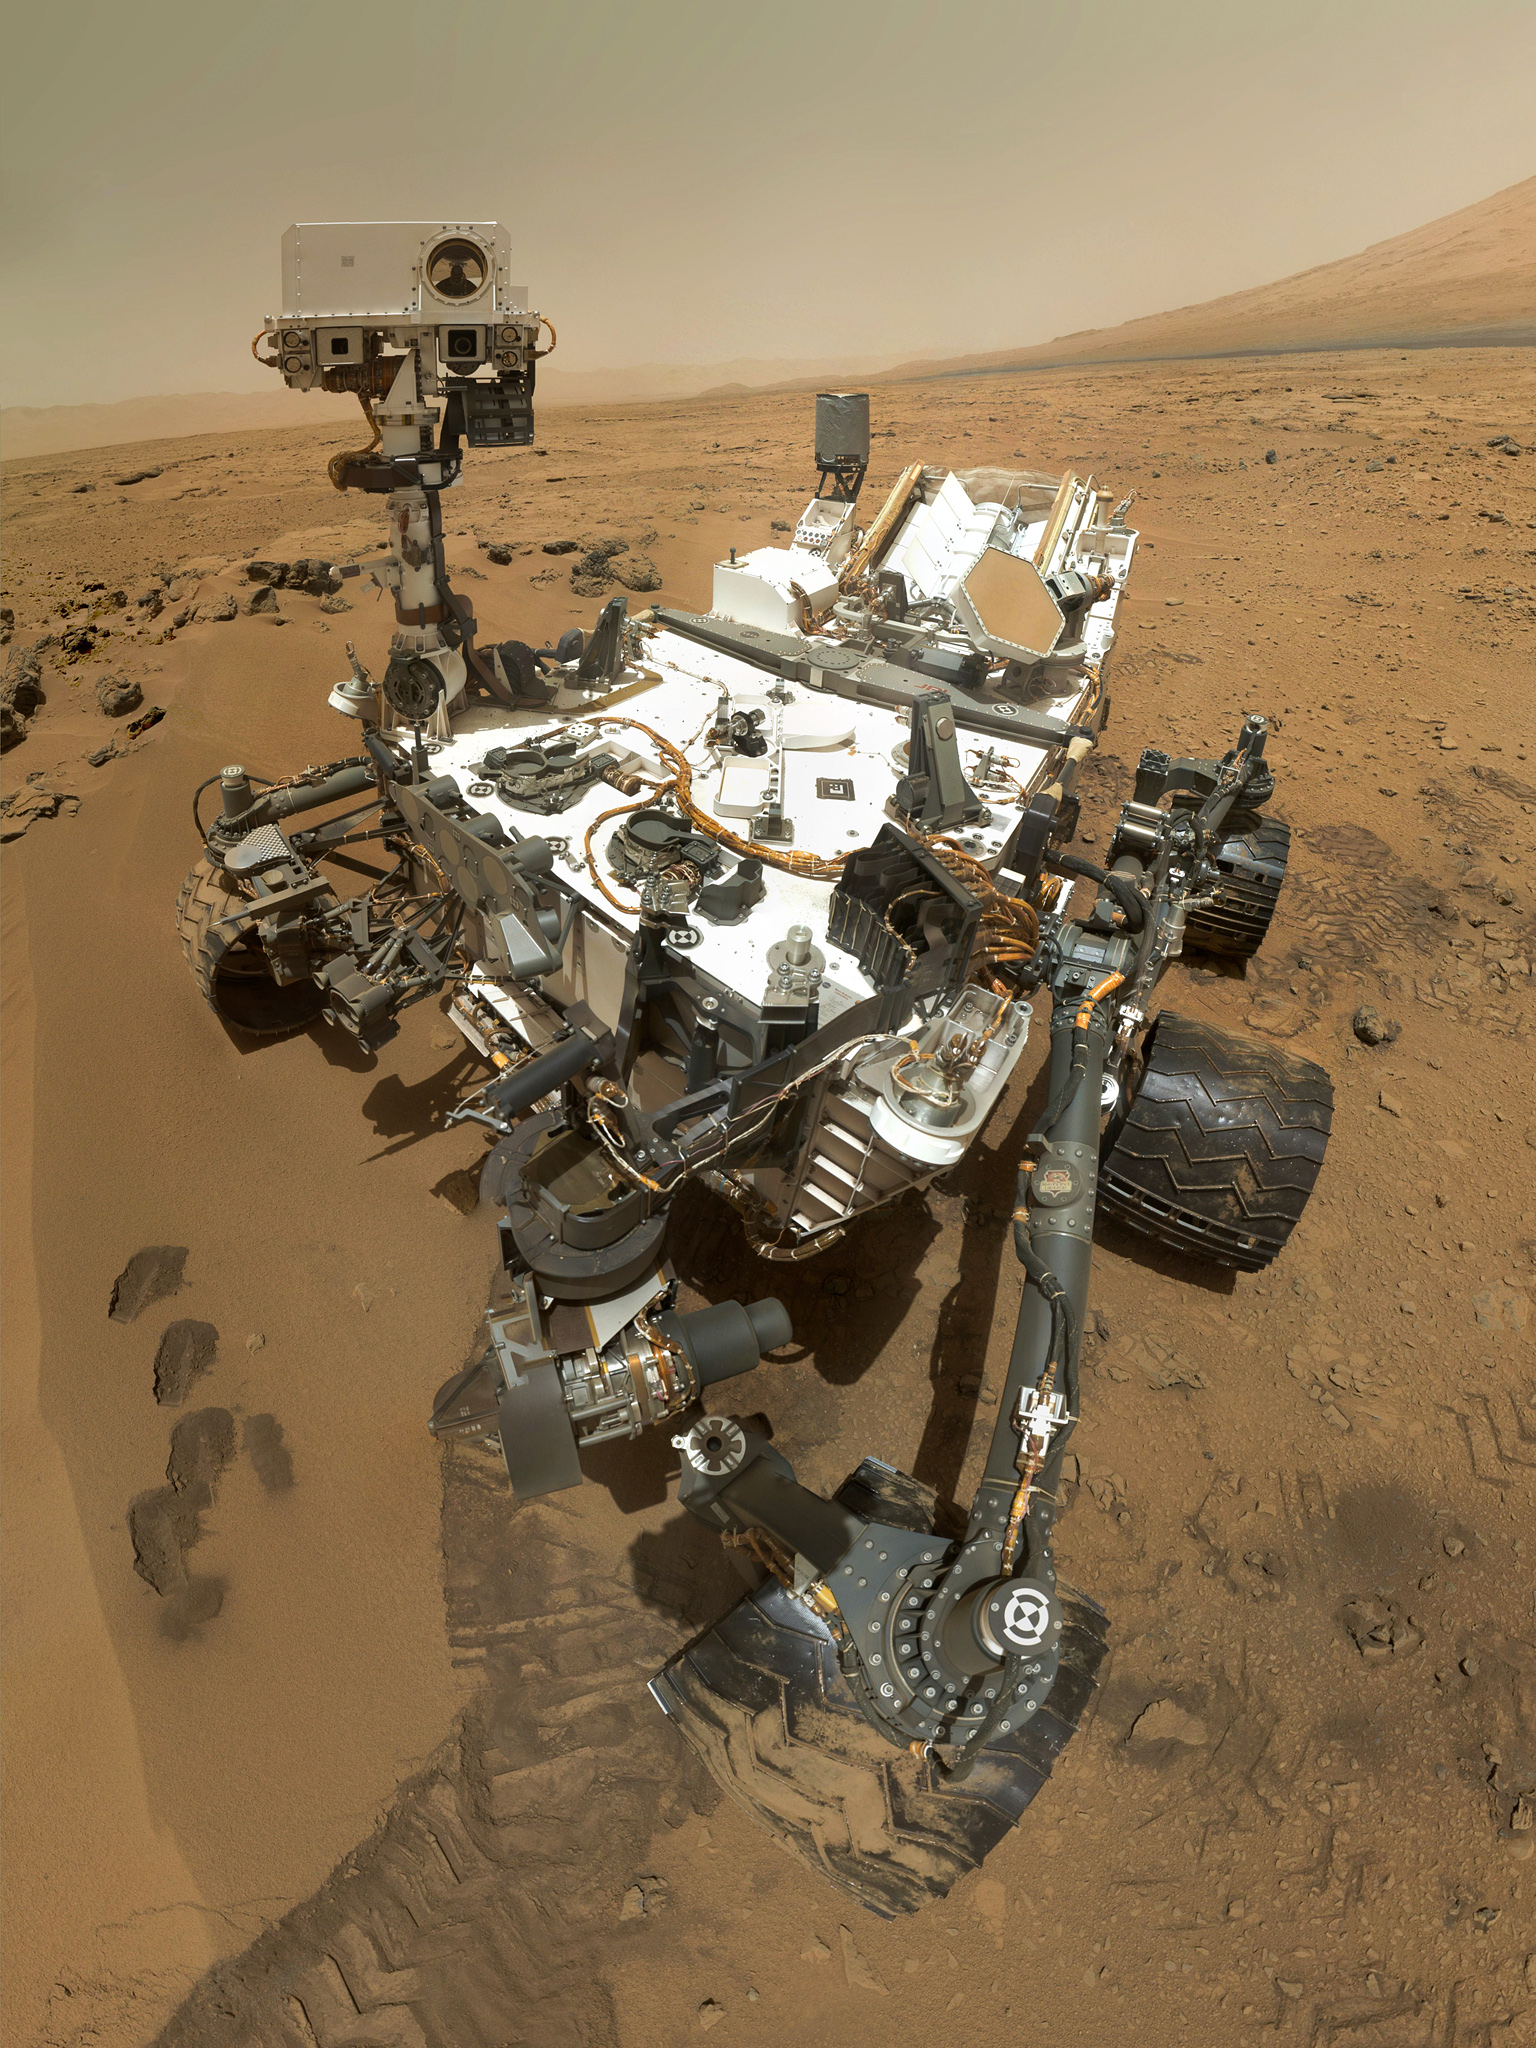 This self-portrait of one of Mars inhabitants; NASA's Curiosity Mars rover. The scene combines dozens of images taken during January 2015 by the MAHLI camera at the end of the rover's robotic arm.   Credits: NASA/JPL-Caltech/MSSS